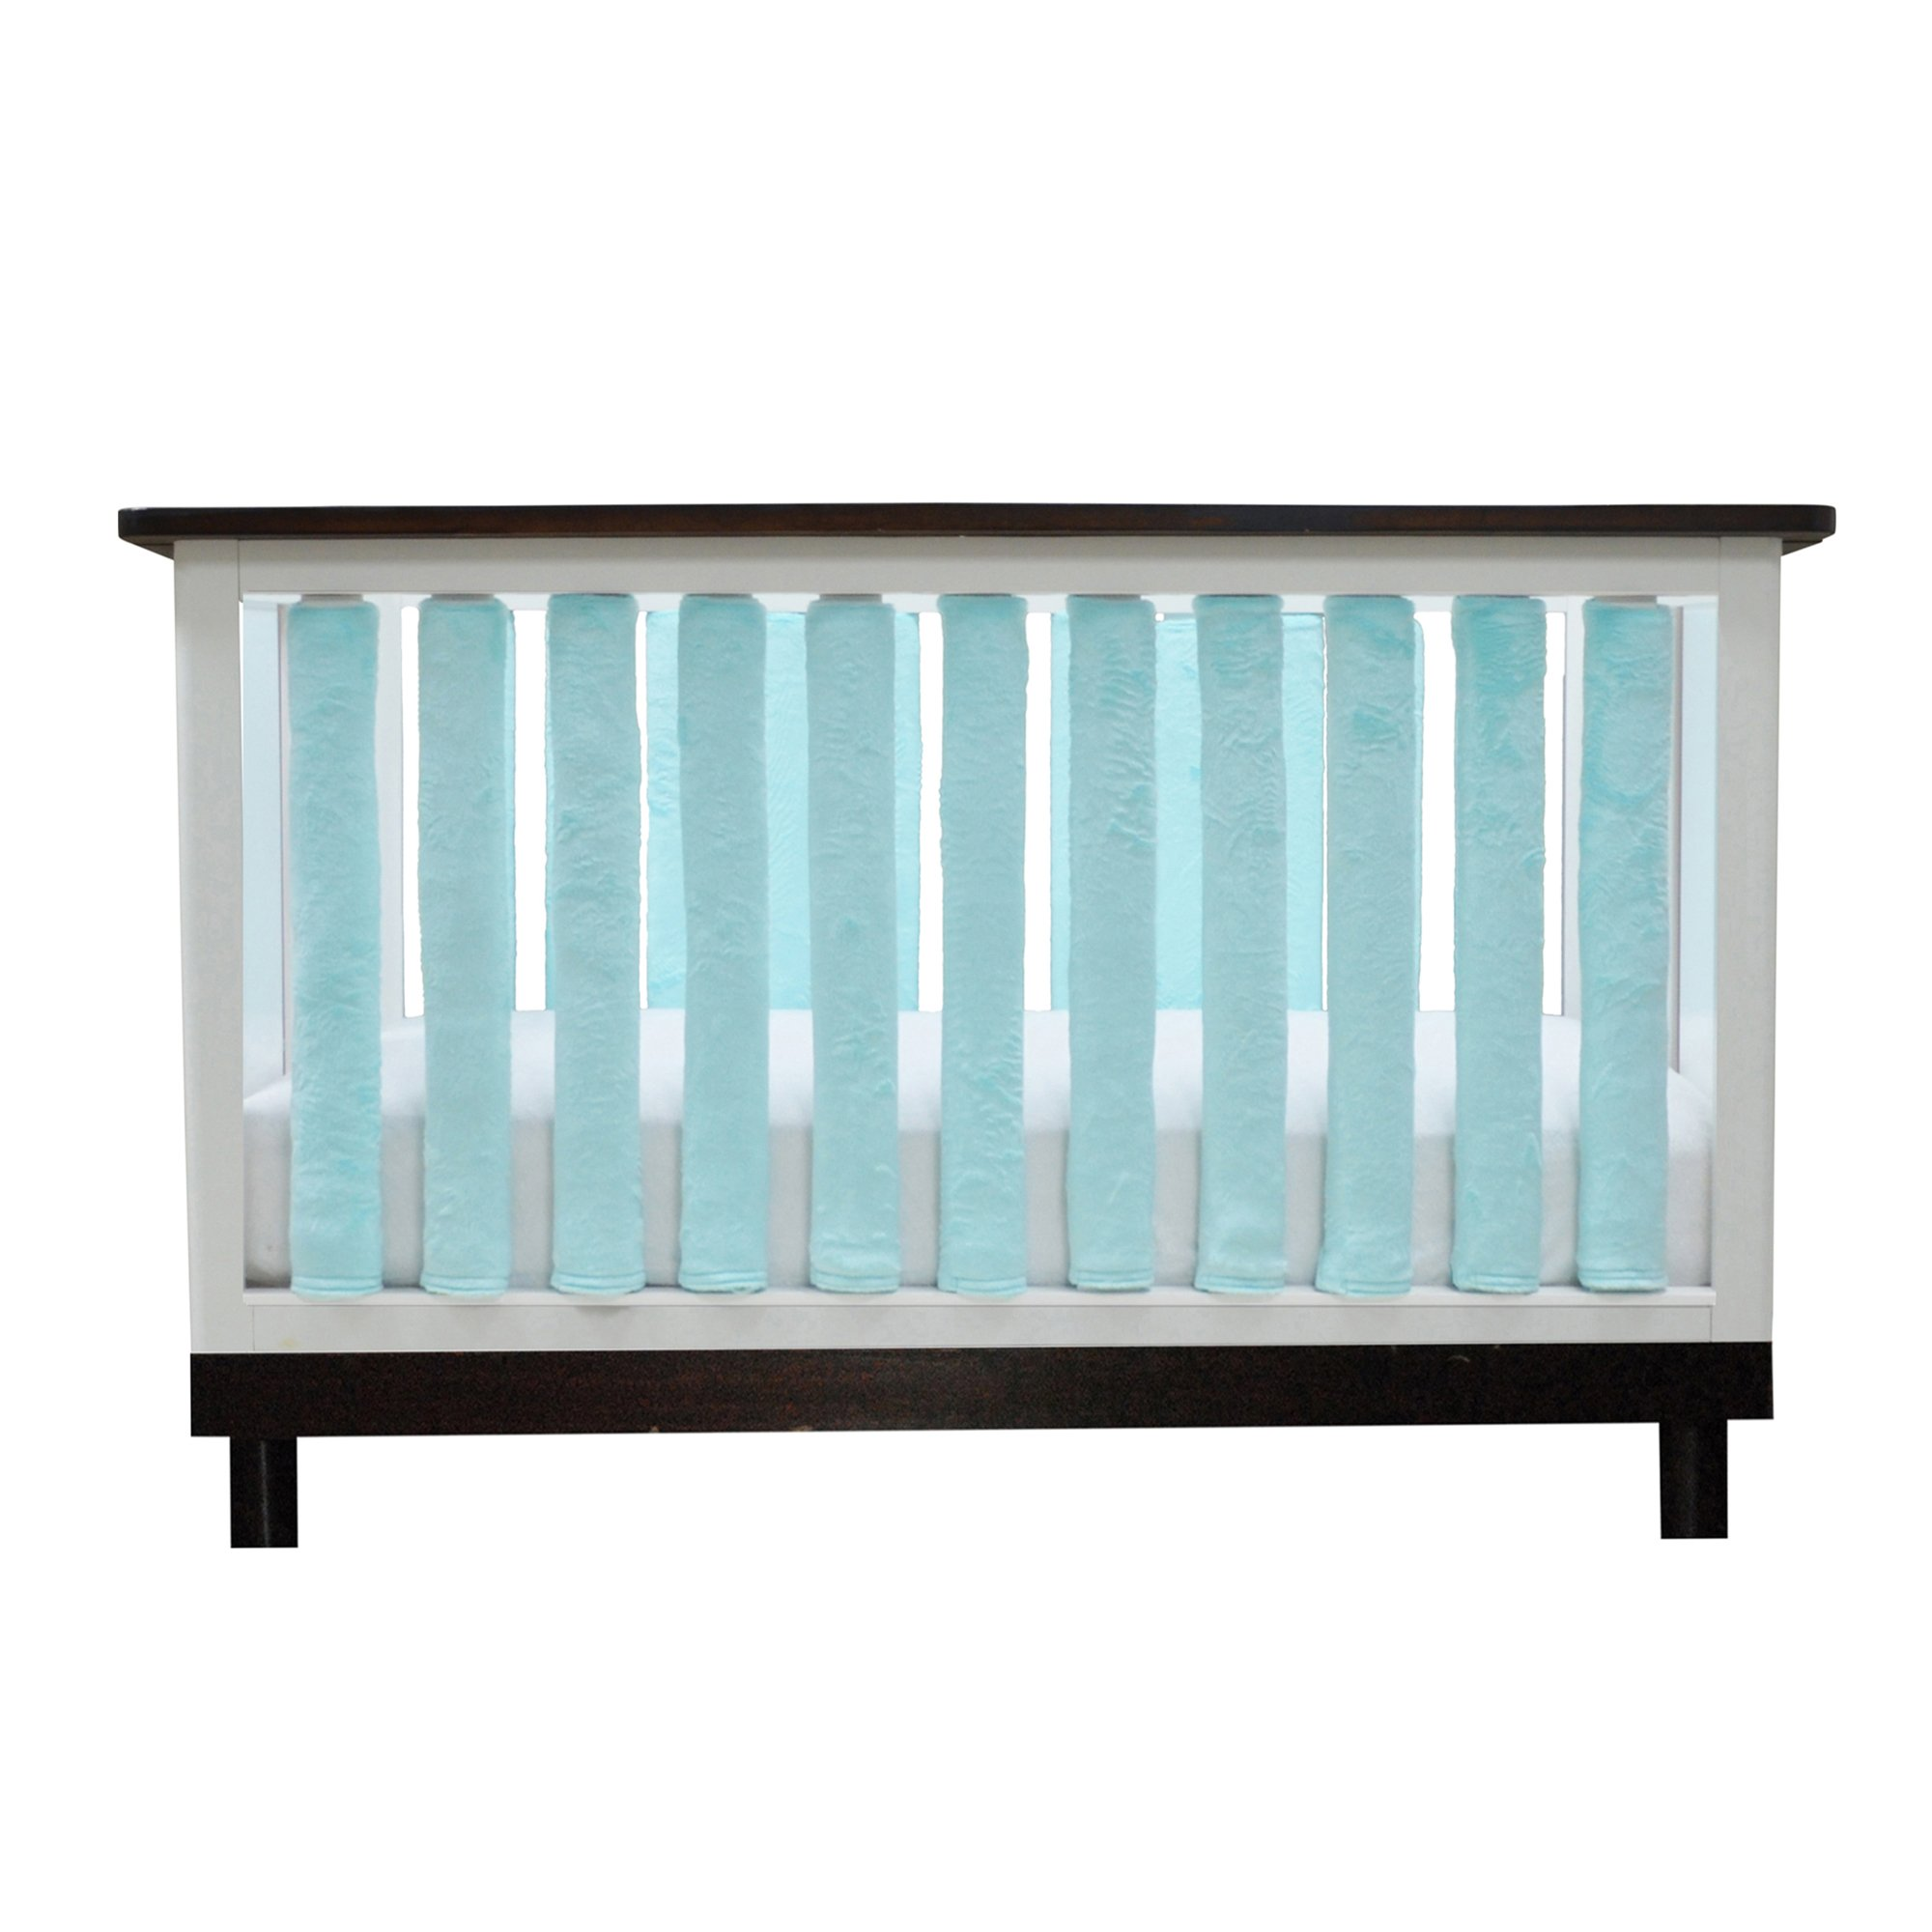 PURE SAFETY Vertical Crib Liners 38 Pack in Luxurious Aqua Minky